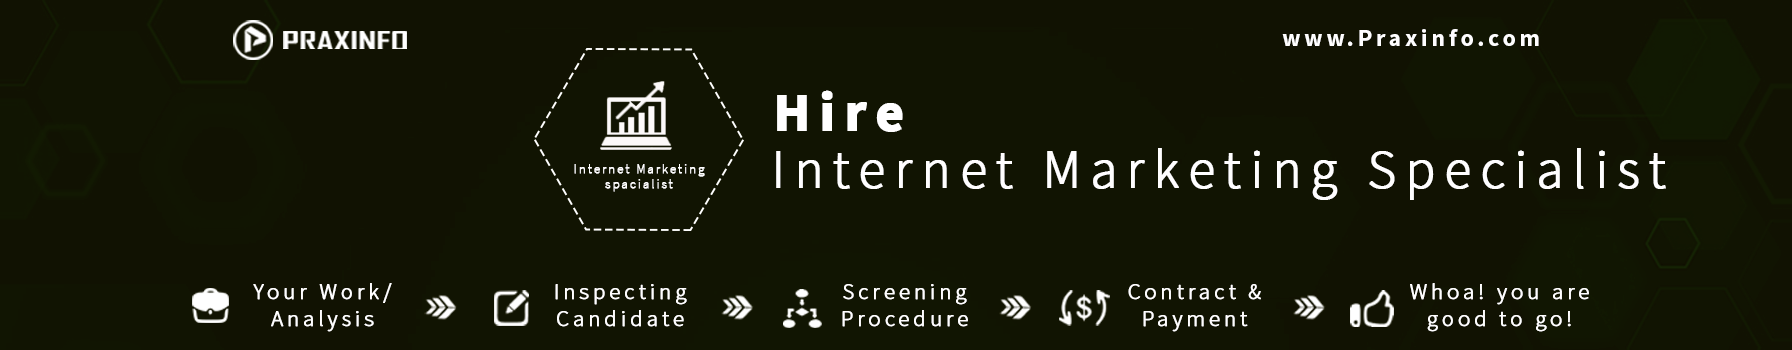 hire-internet-marketing-spacialist.png